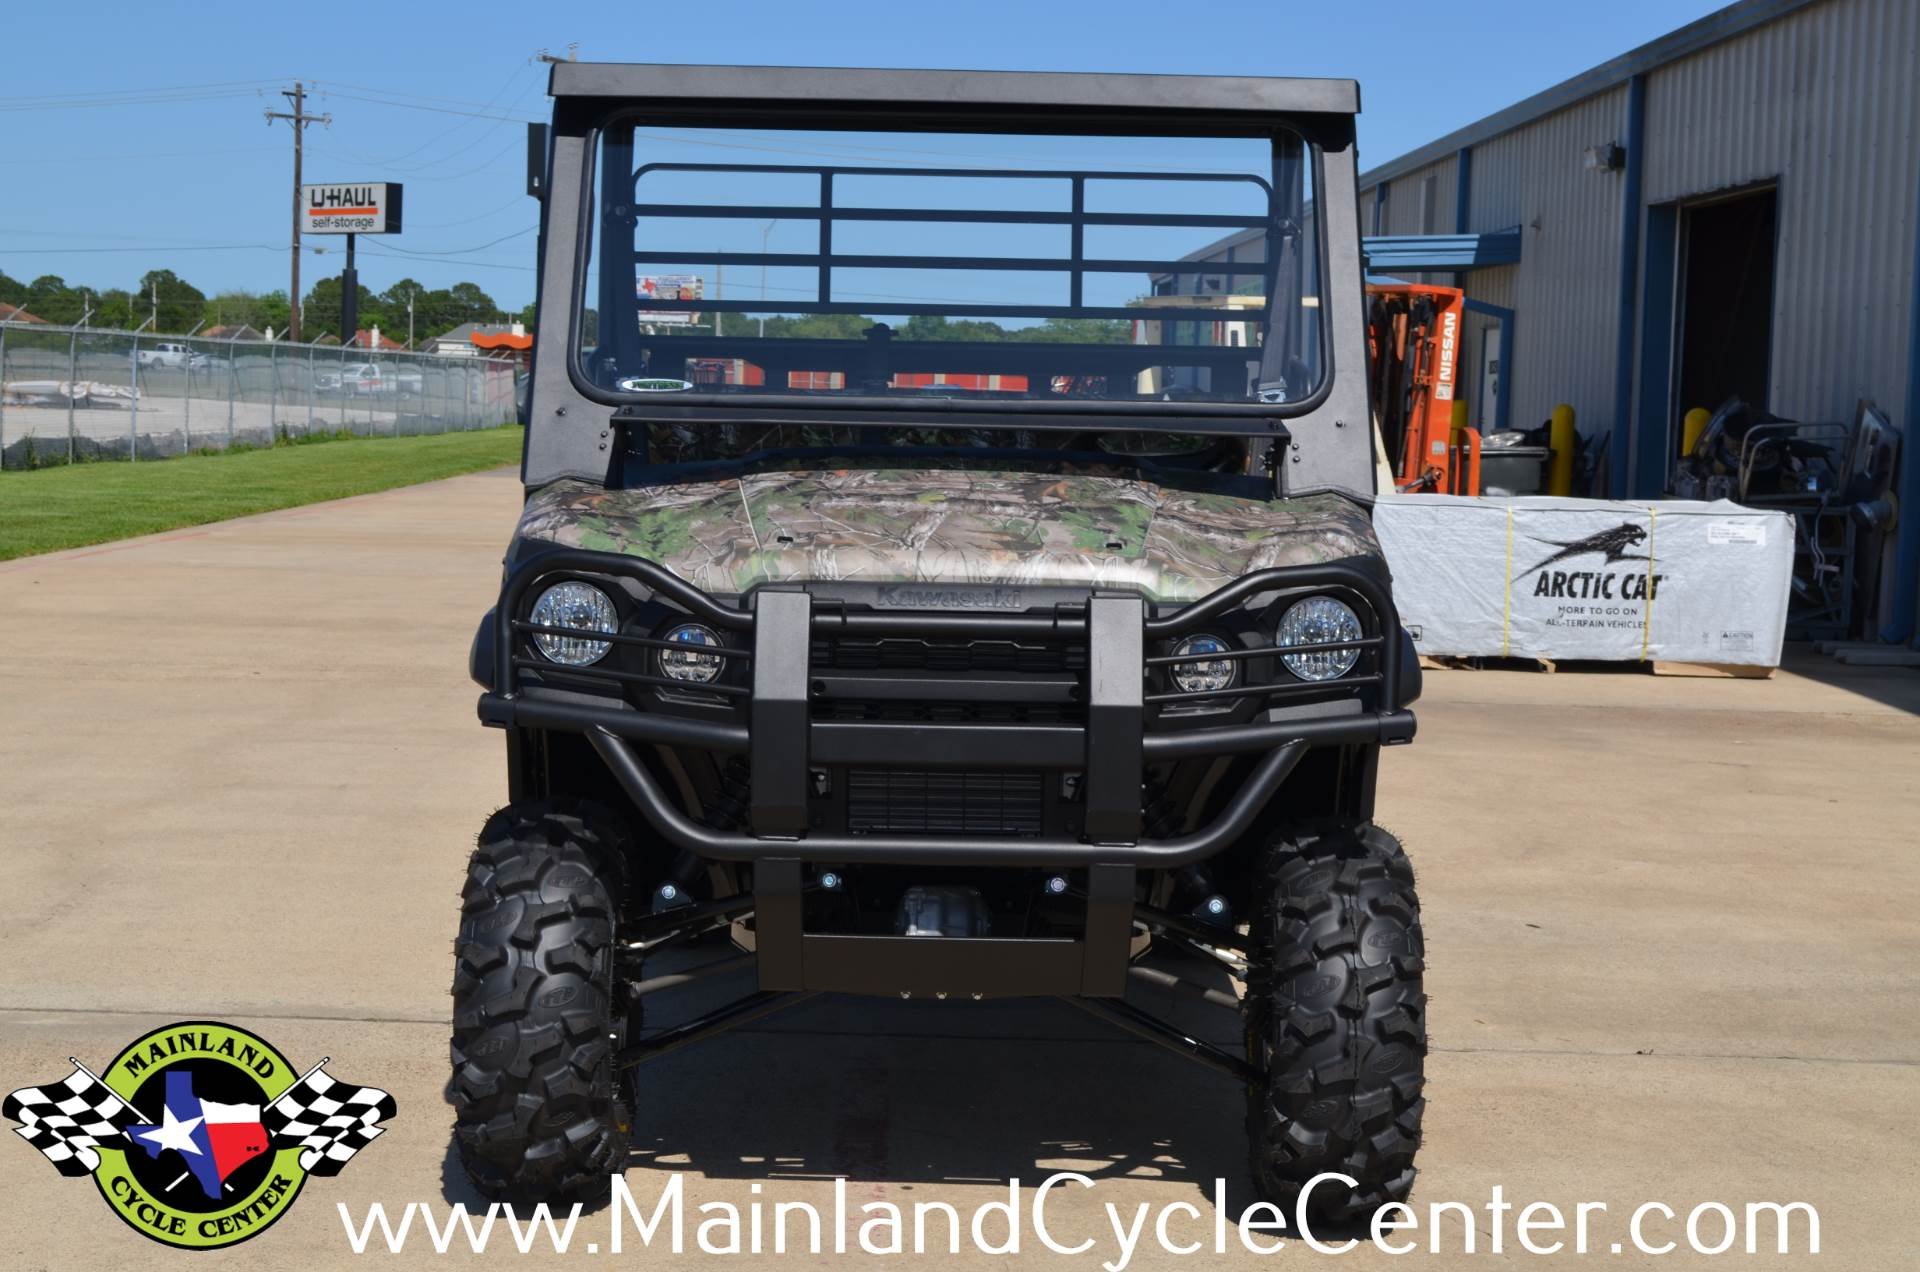 2016 Kawasaki Mule Pro-FX EPS Camo in La Marque, Texas - Photo 9